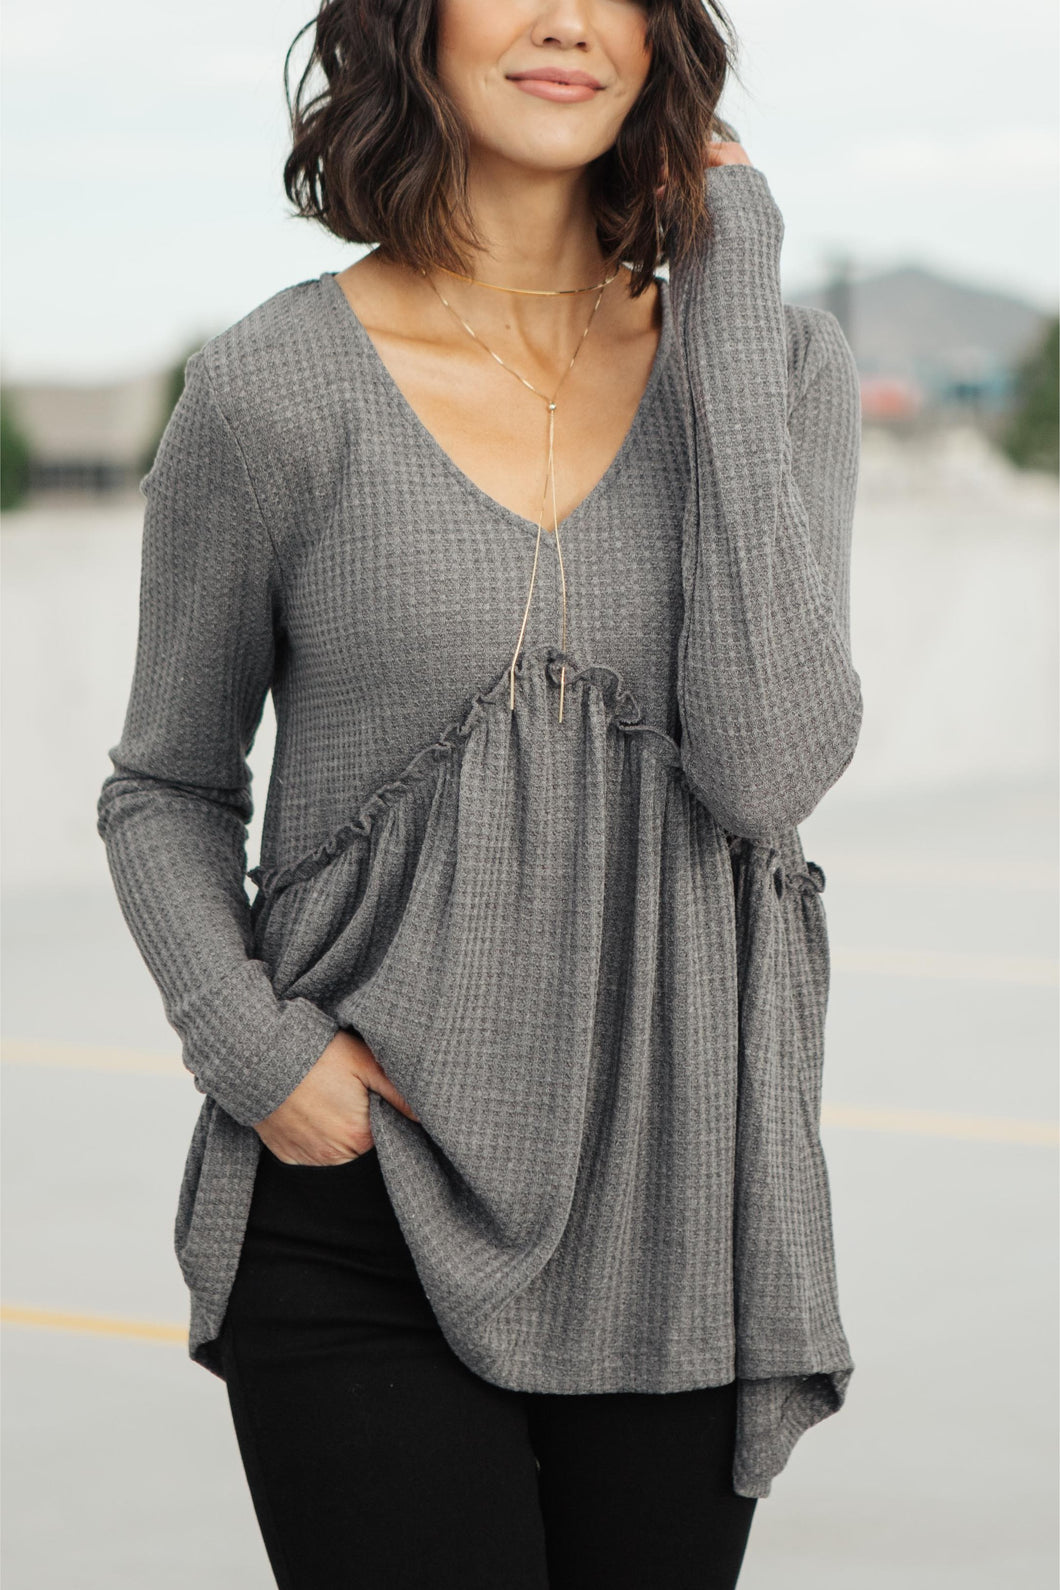 The Right Kind Of Attention Top In Charcoal